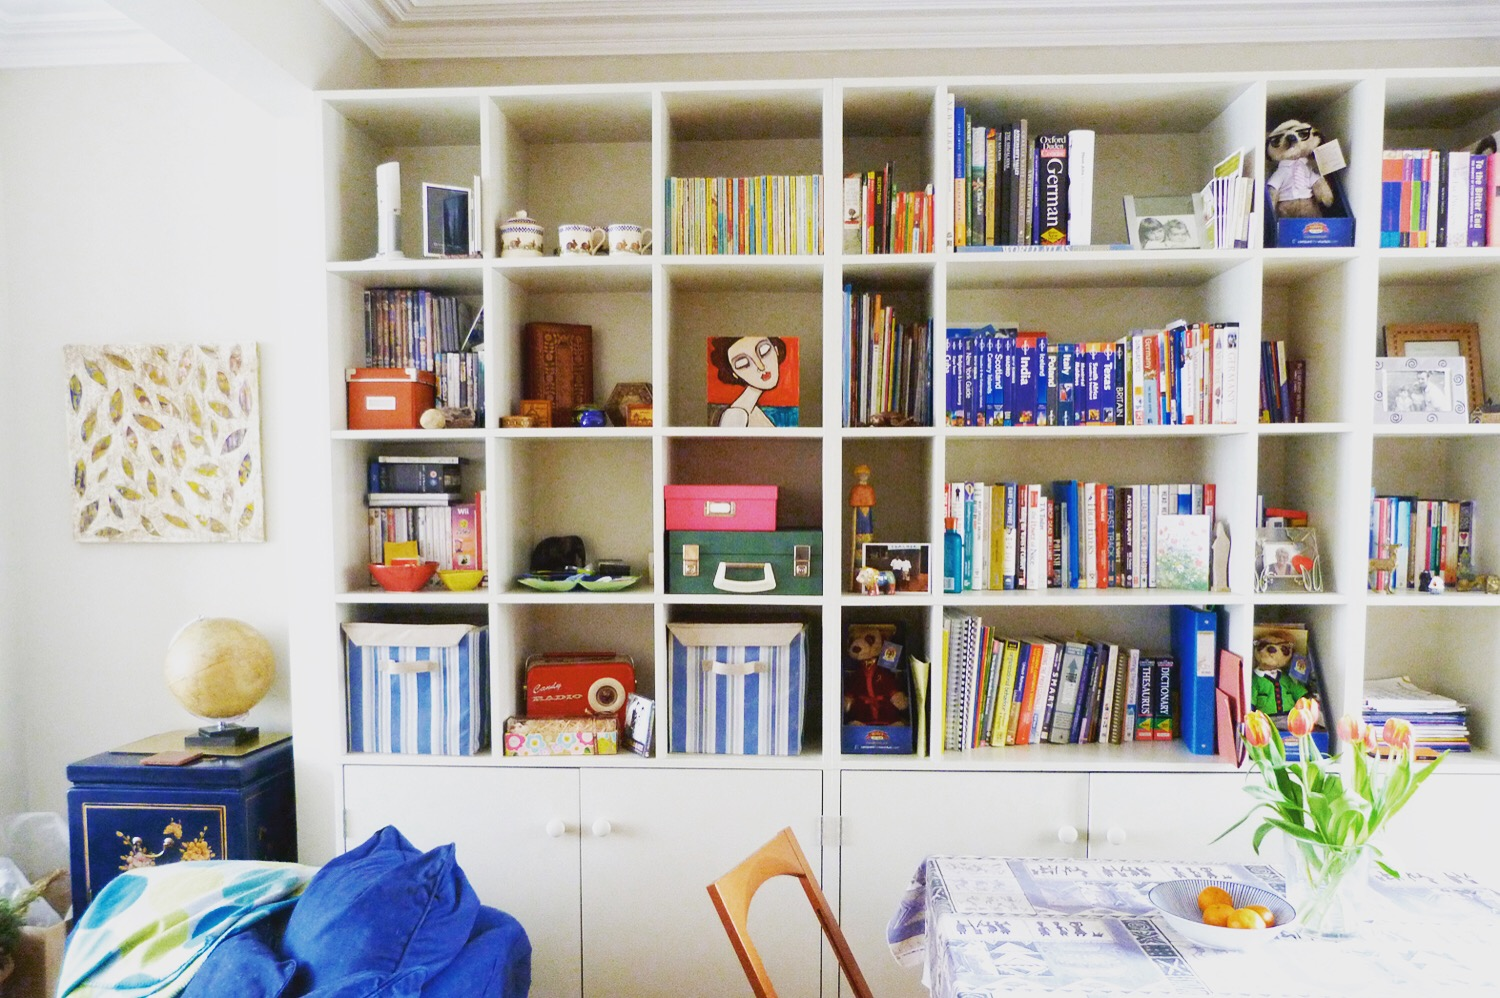 Bookshelves and display shelving - full width box shelving with low-level cabinets painted finish to match decor.